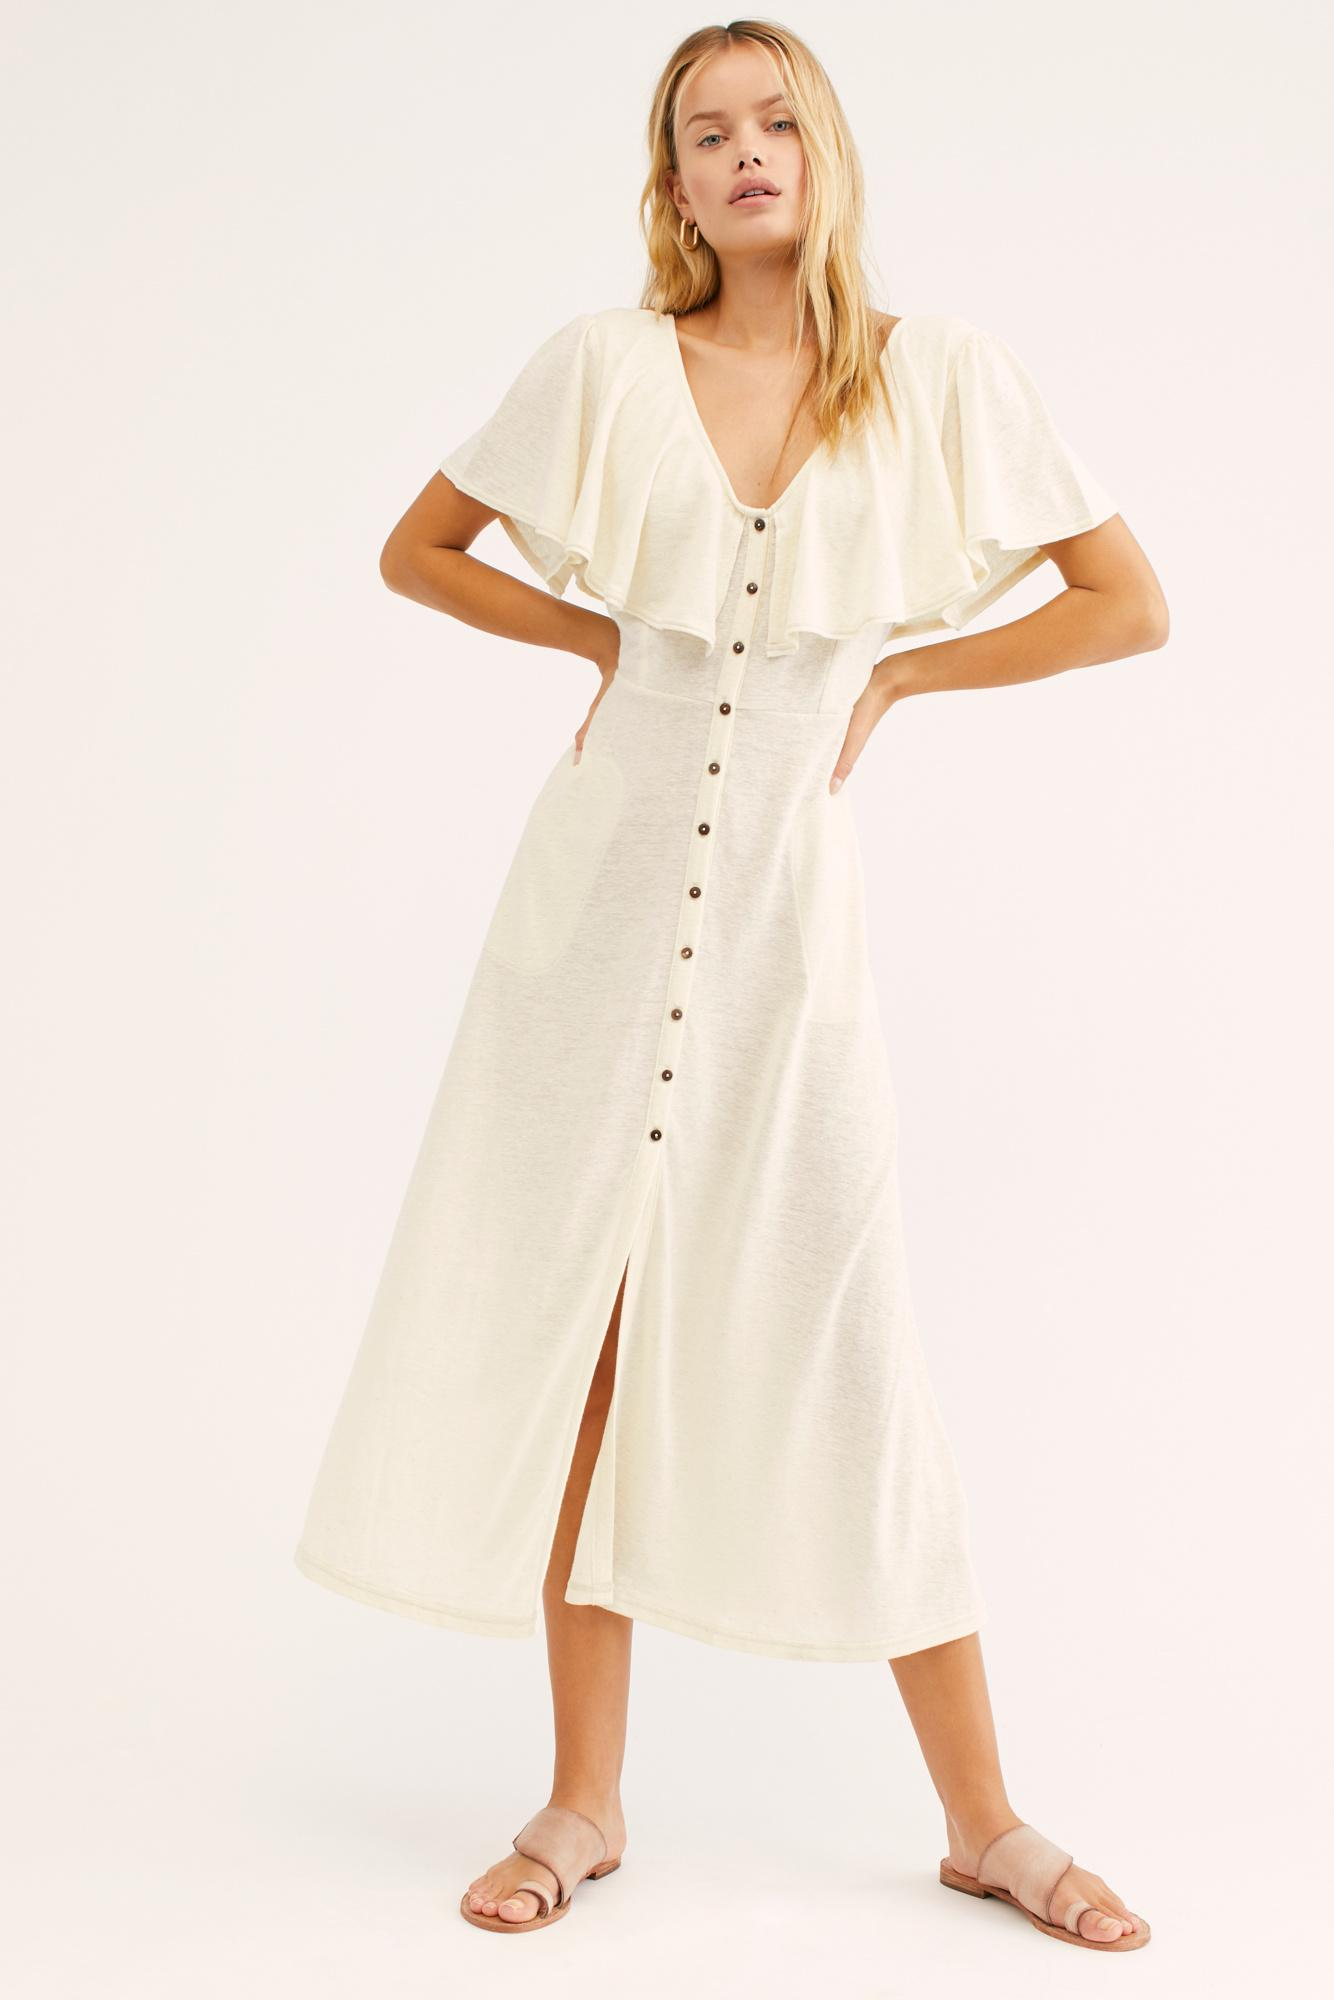 e77429aae1 Free People Messenger Midi Dress By Fp Beach in Natural - Lyst